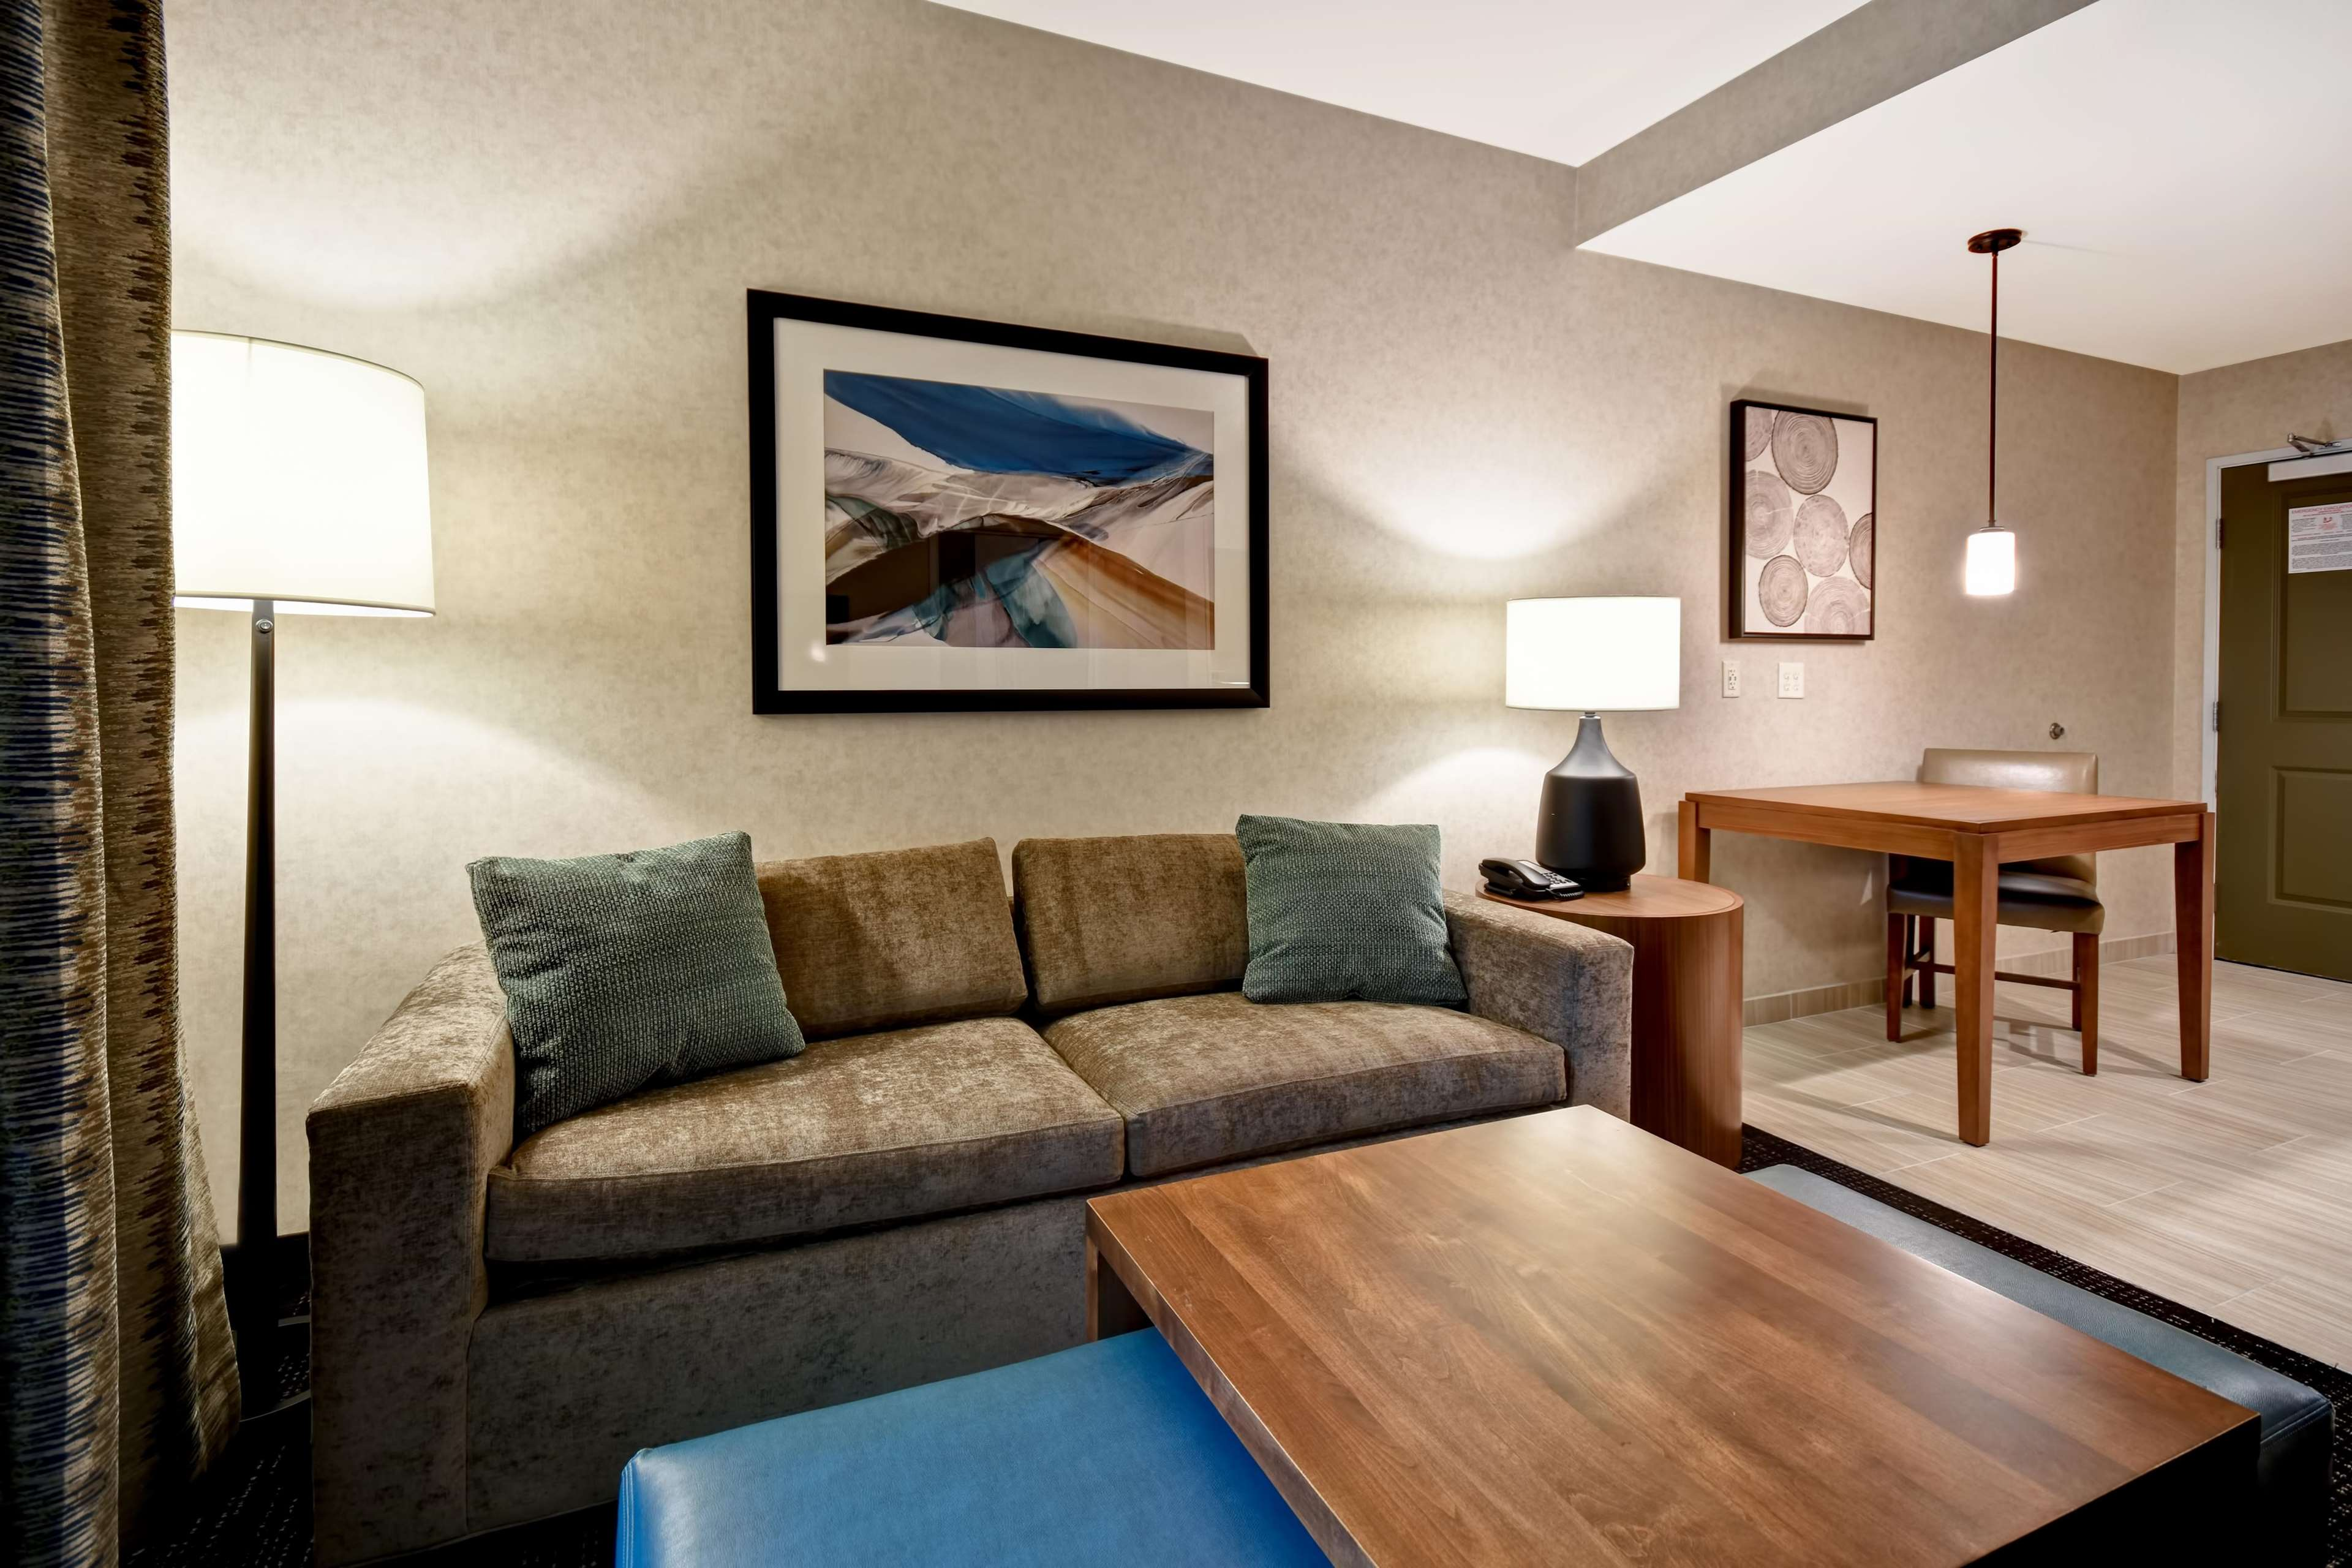 Homewood Suites by Hilton Pleasant Hill Concord image 9